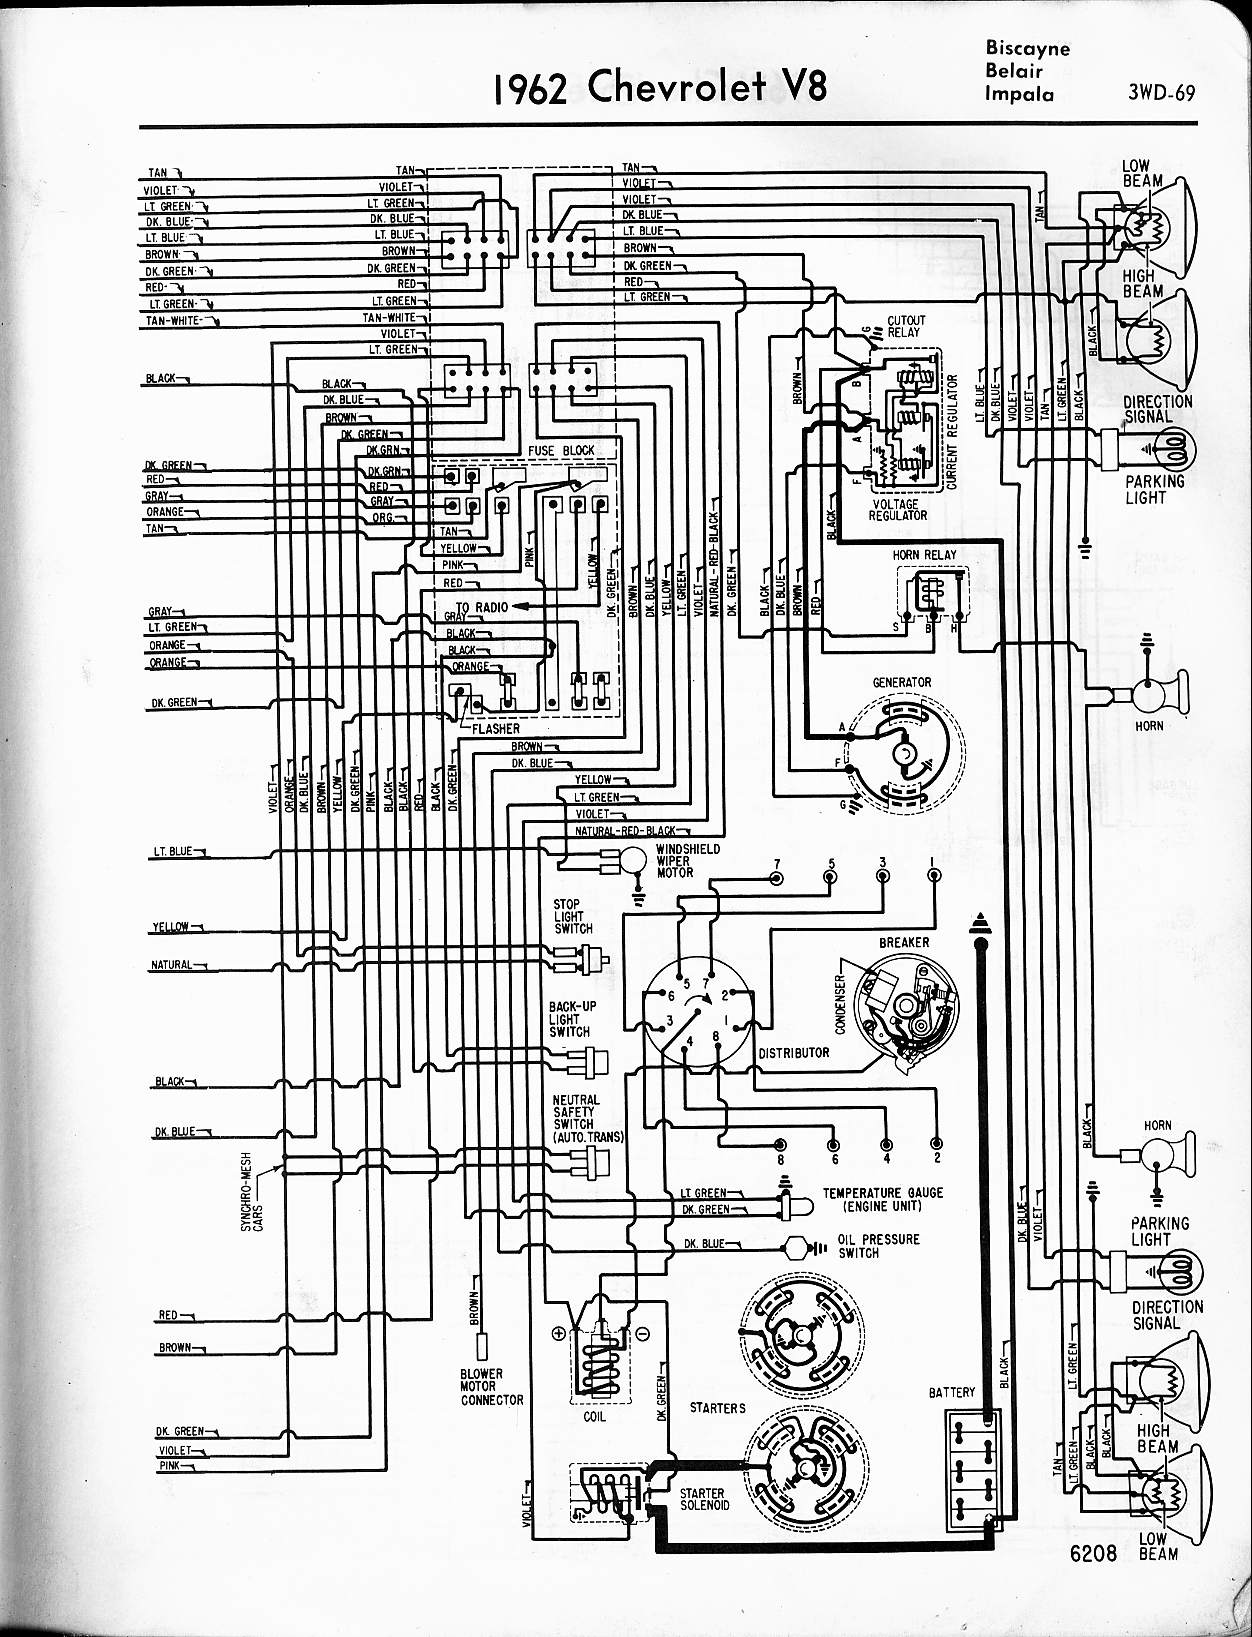 1964 chevy c10 wiper wiring diagram auto electrical wiring diagram u2022 rh 6weeks co uk